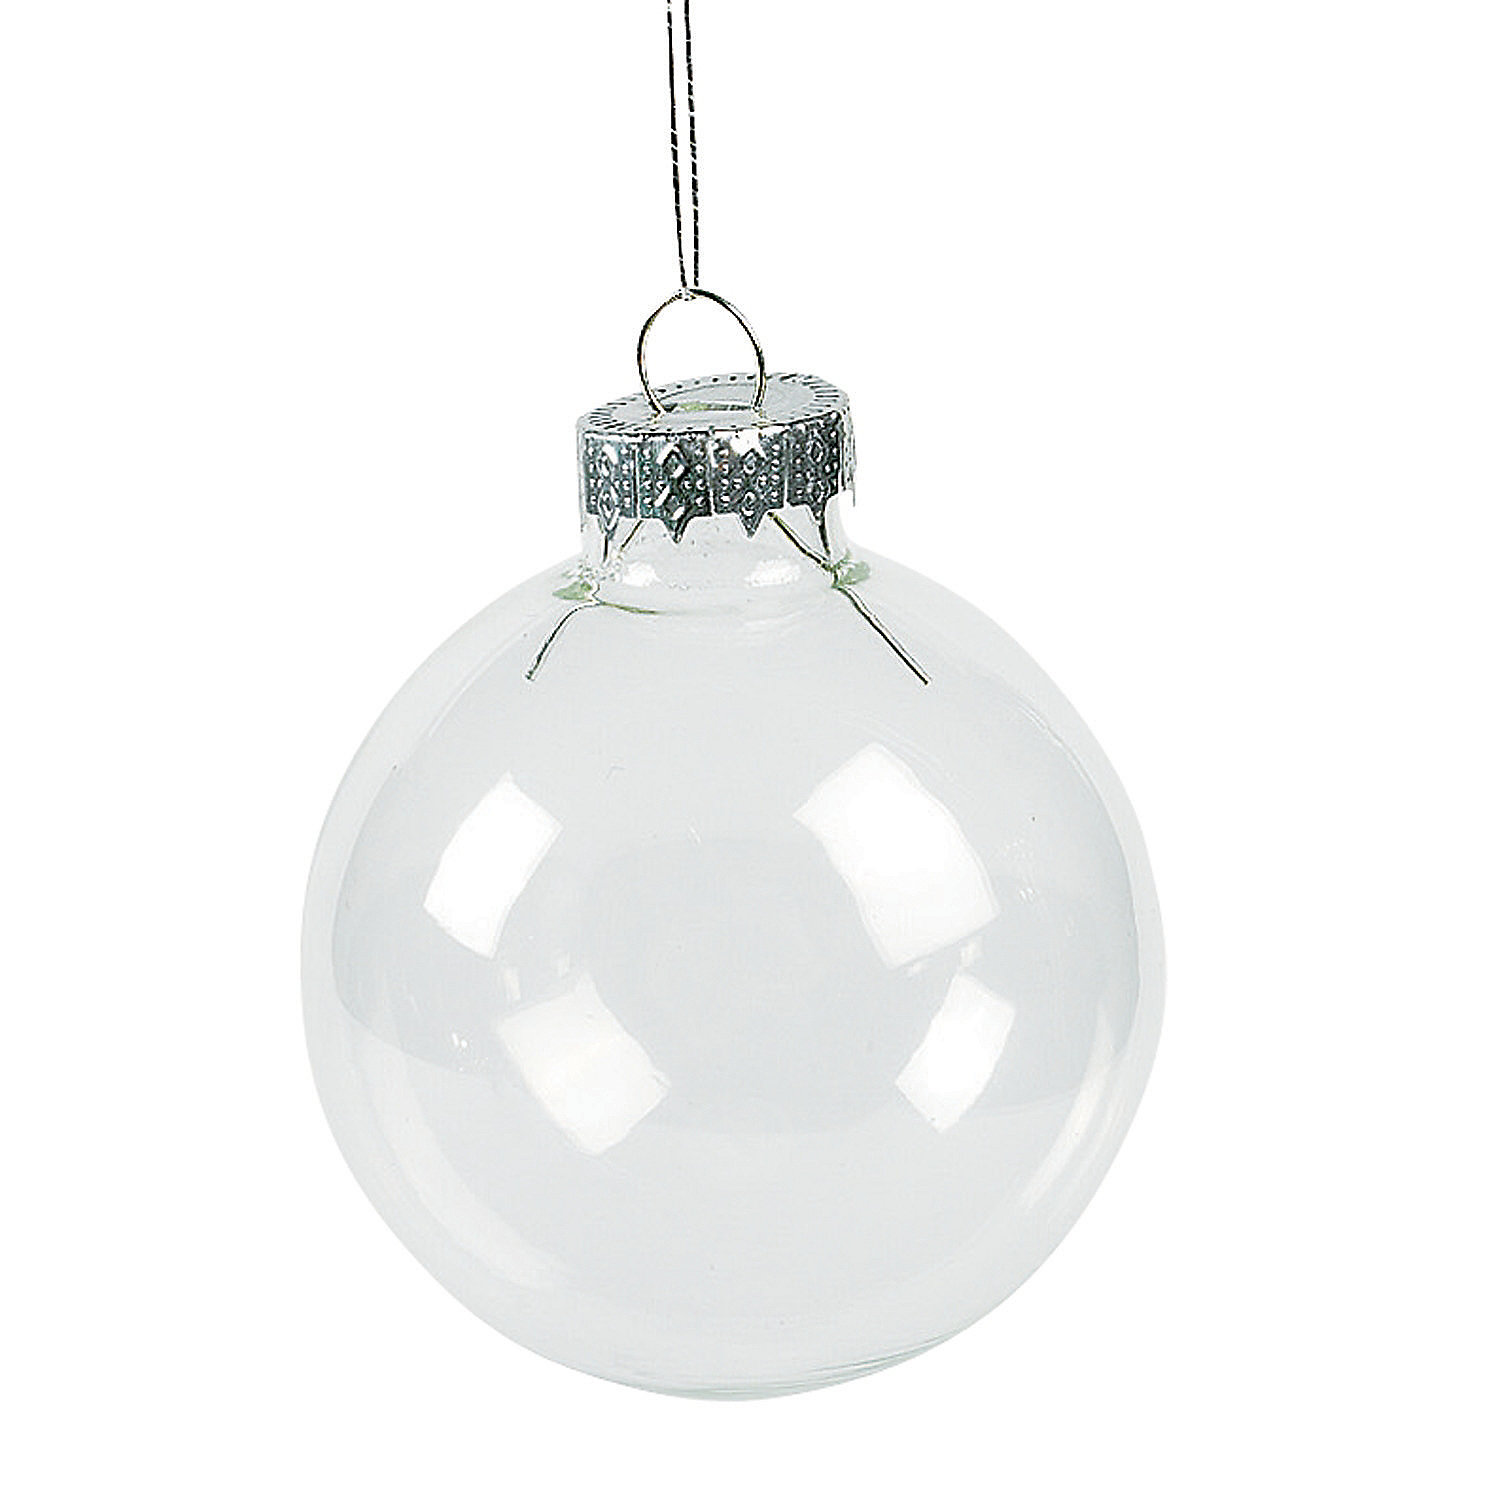 Diy clear round christmas ornaments in 41 1348 diy clear round